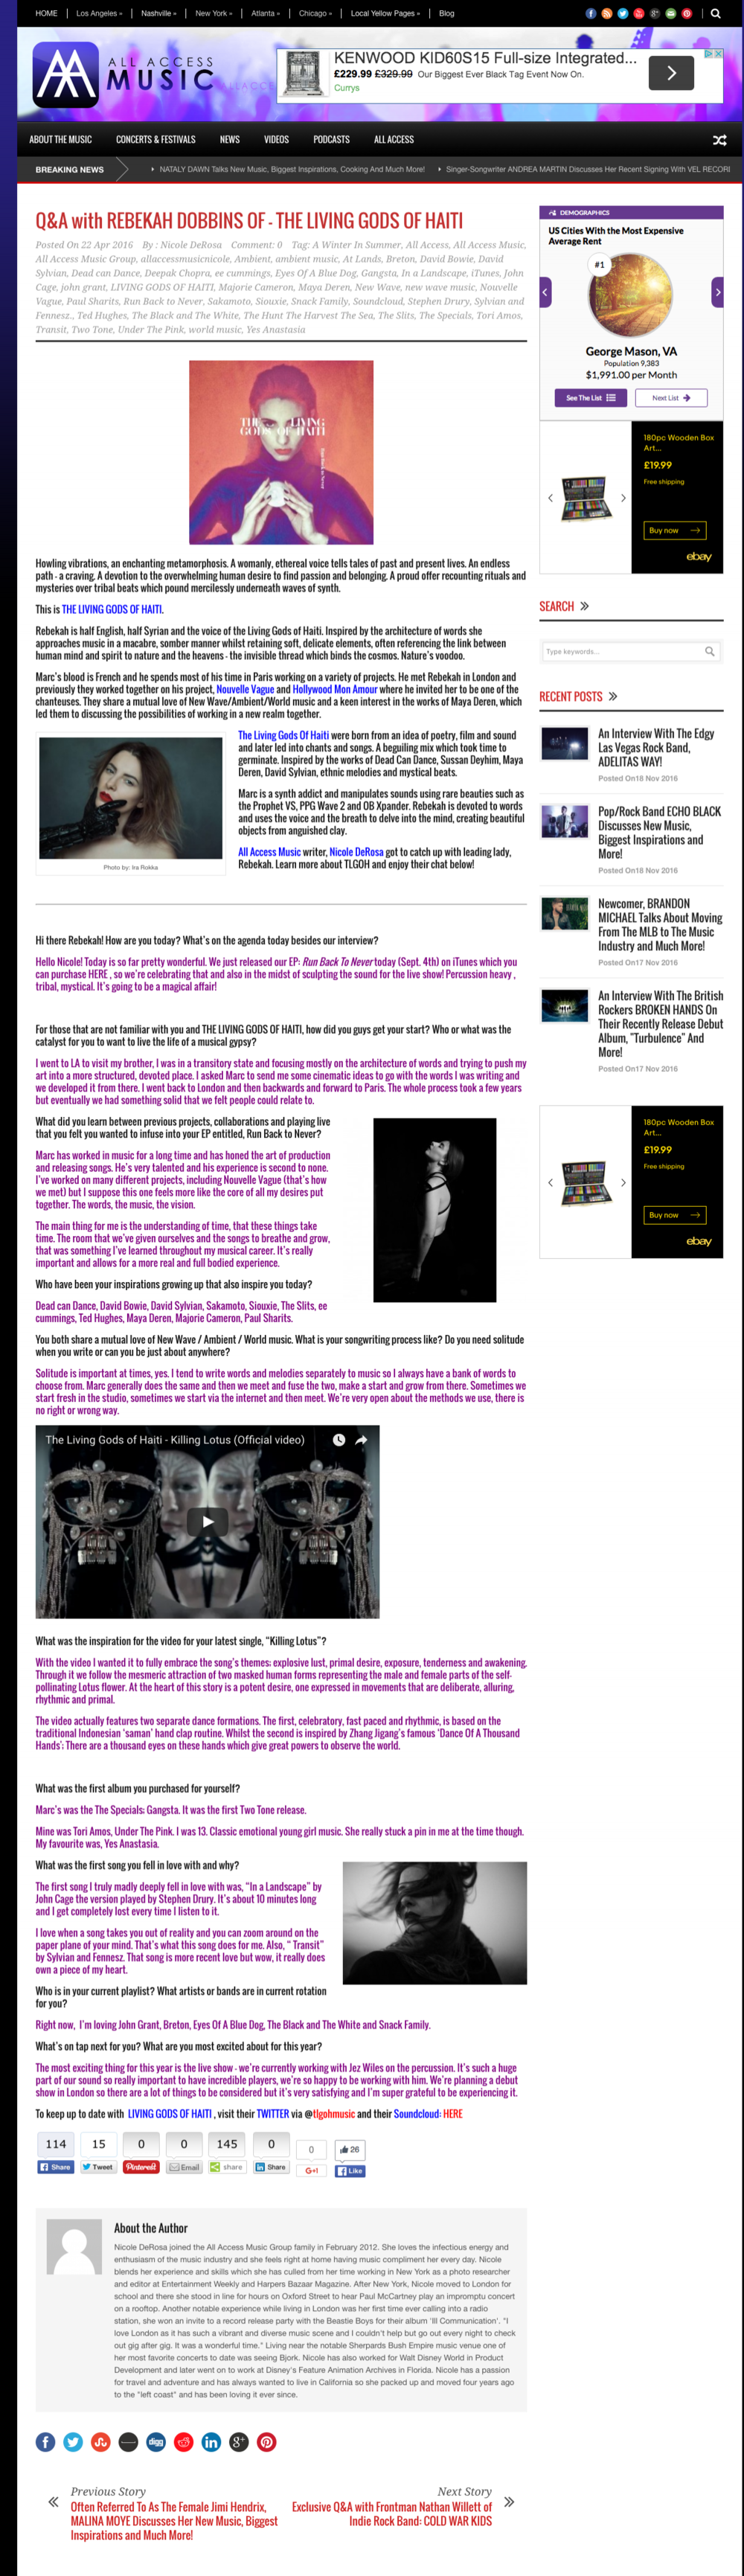 screencapture-music-allaccess-qa-with-rebekah-dobbins-of-the-living-gods-of-haiti-1479766200329.png